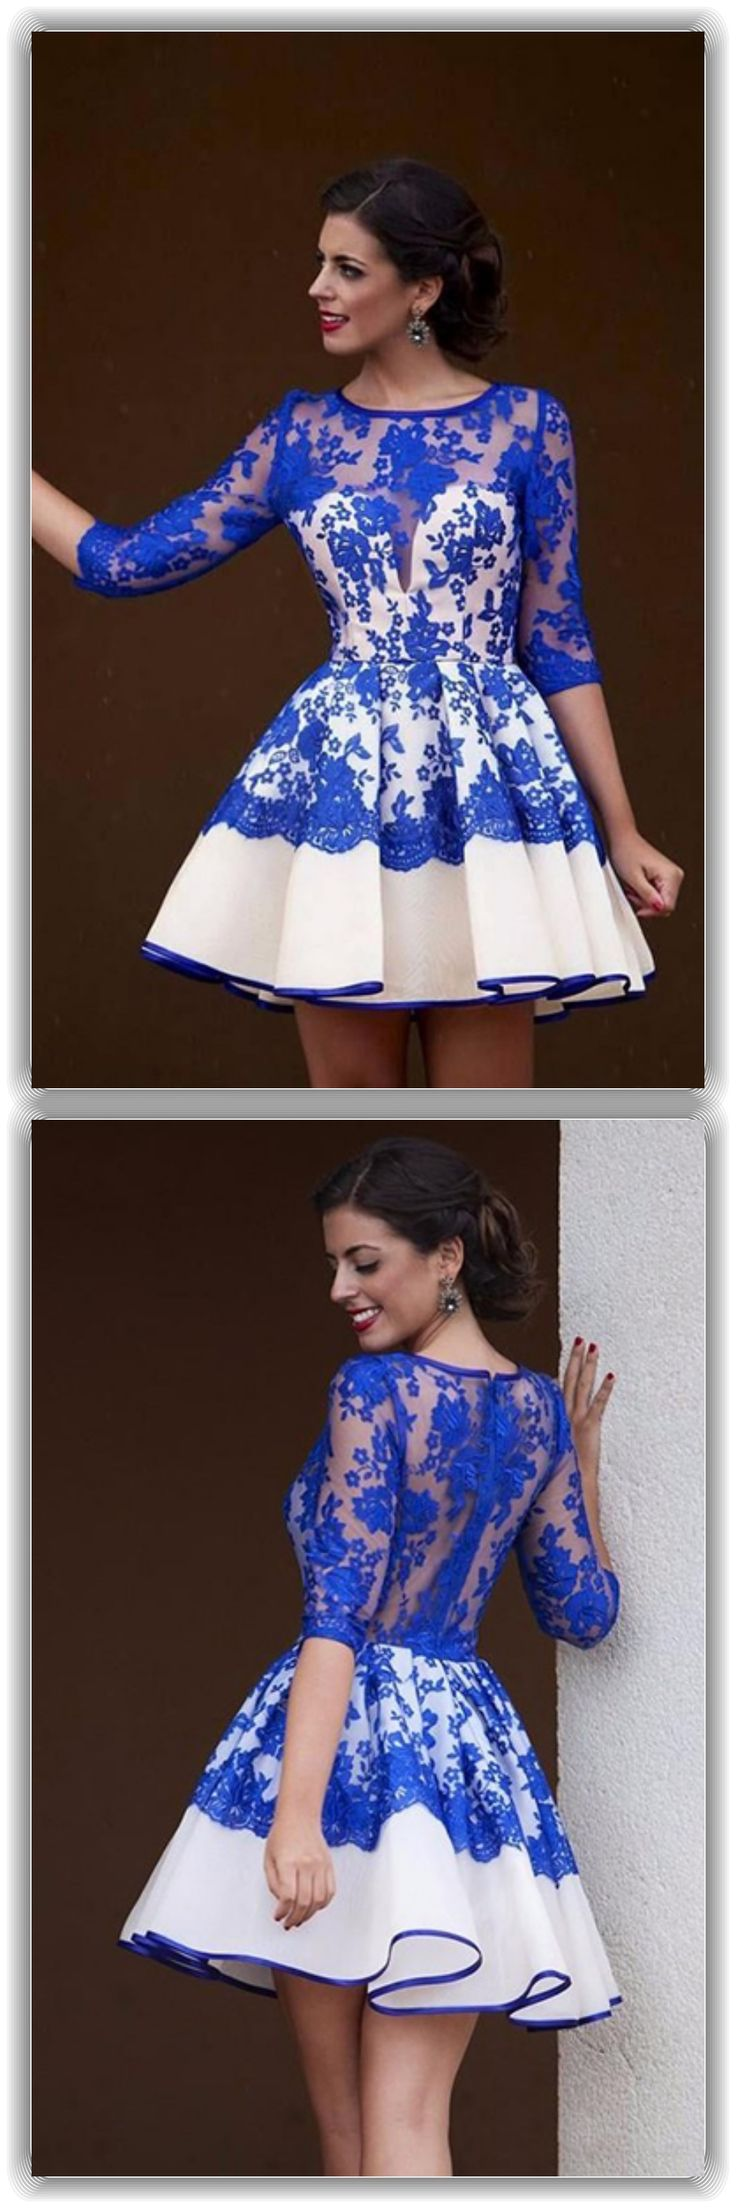 homecoming dresses 2017, blue lace  homecoming dresses,round neck  homecoming dresses, 3/4 sleeves homecoming dresses, short homecoming dresses, satin homecoming dresses, cocktail dresses, party dresses #SIMIBridal #homecomingdresses